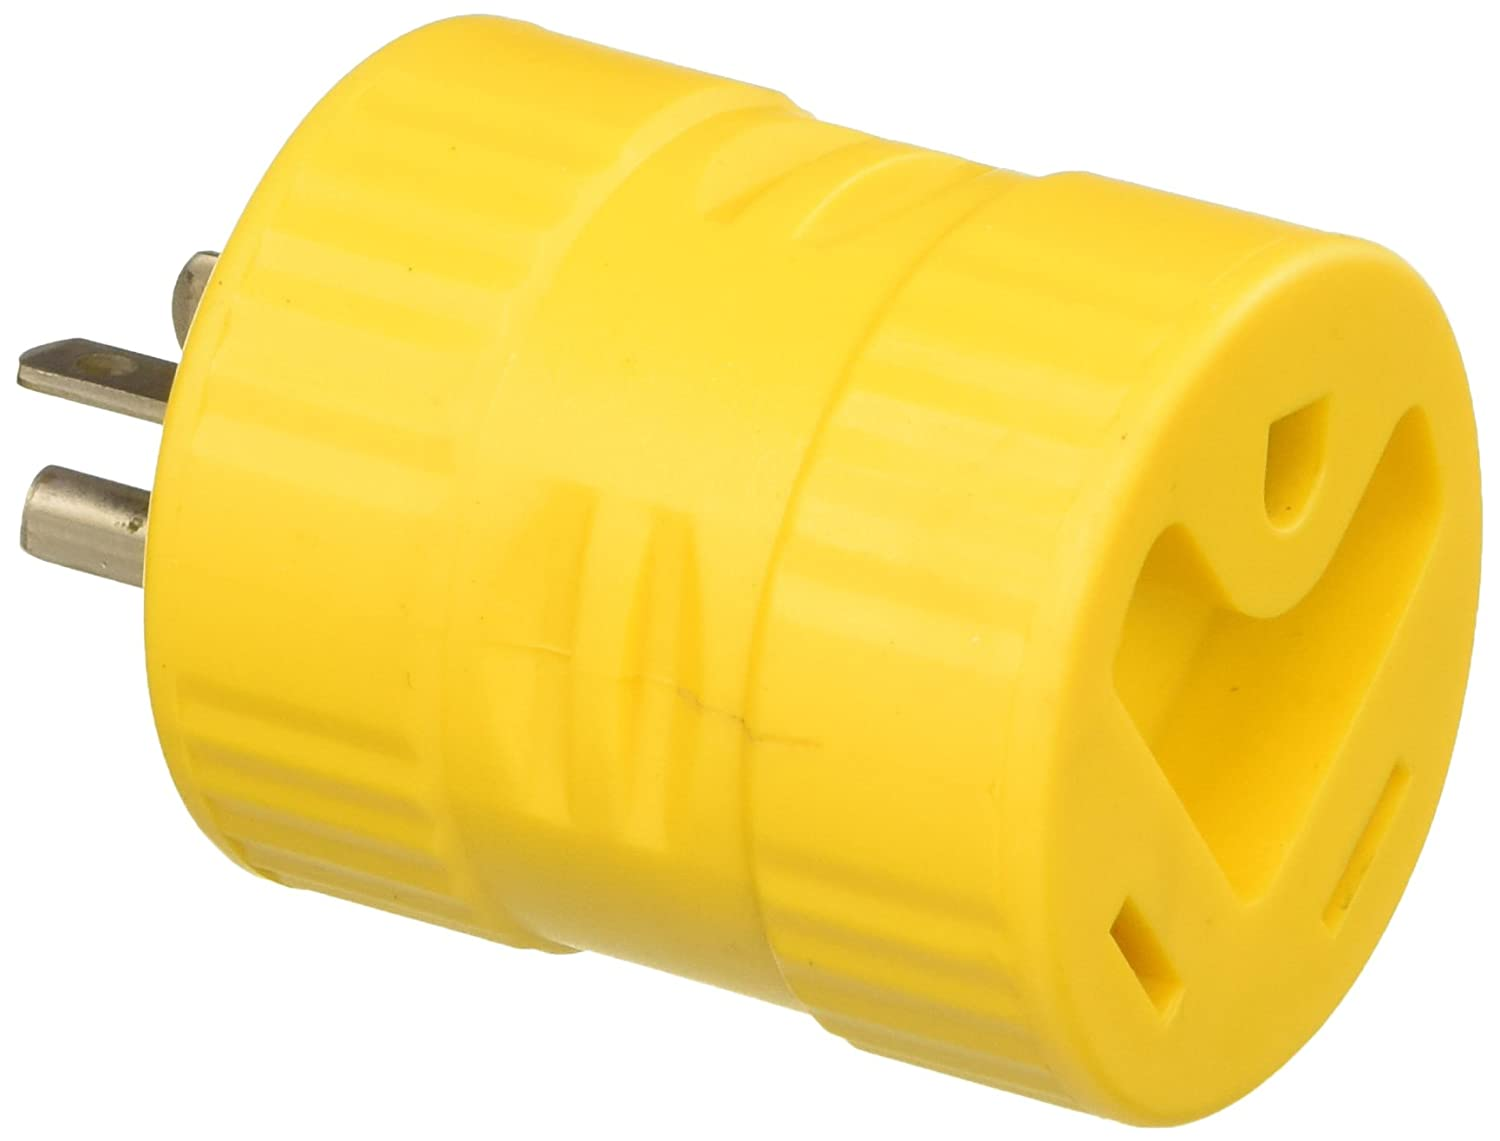 ParkPower 126A Generator Adapter, 30A/125V Connector and 20A/125V Straight Blade Male Plug Park Power